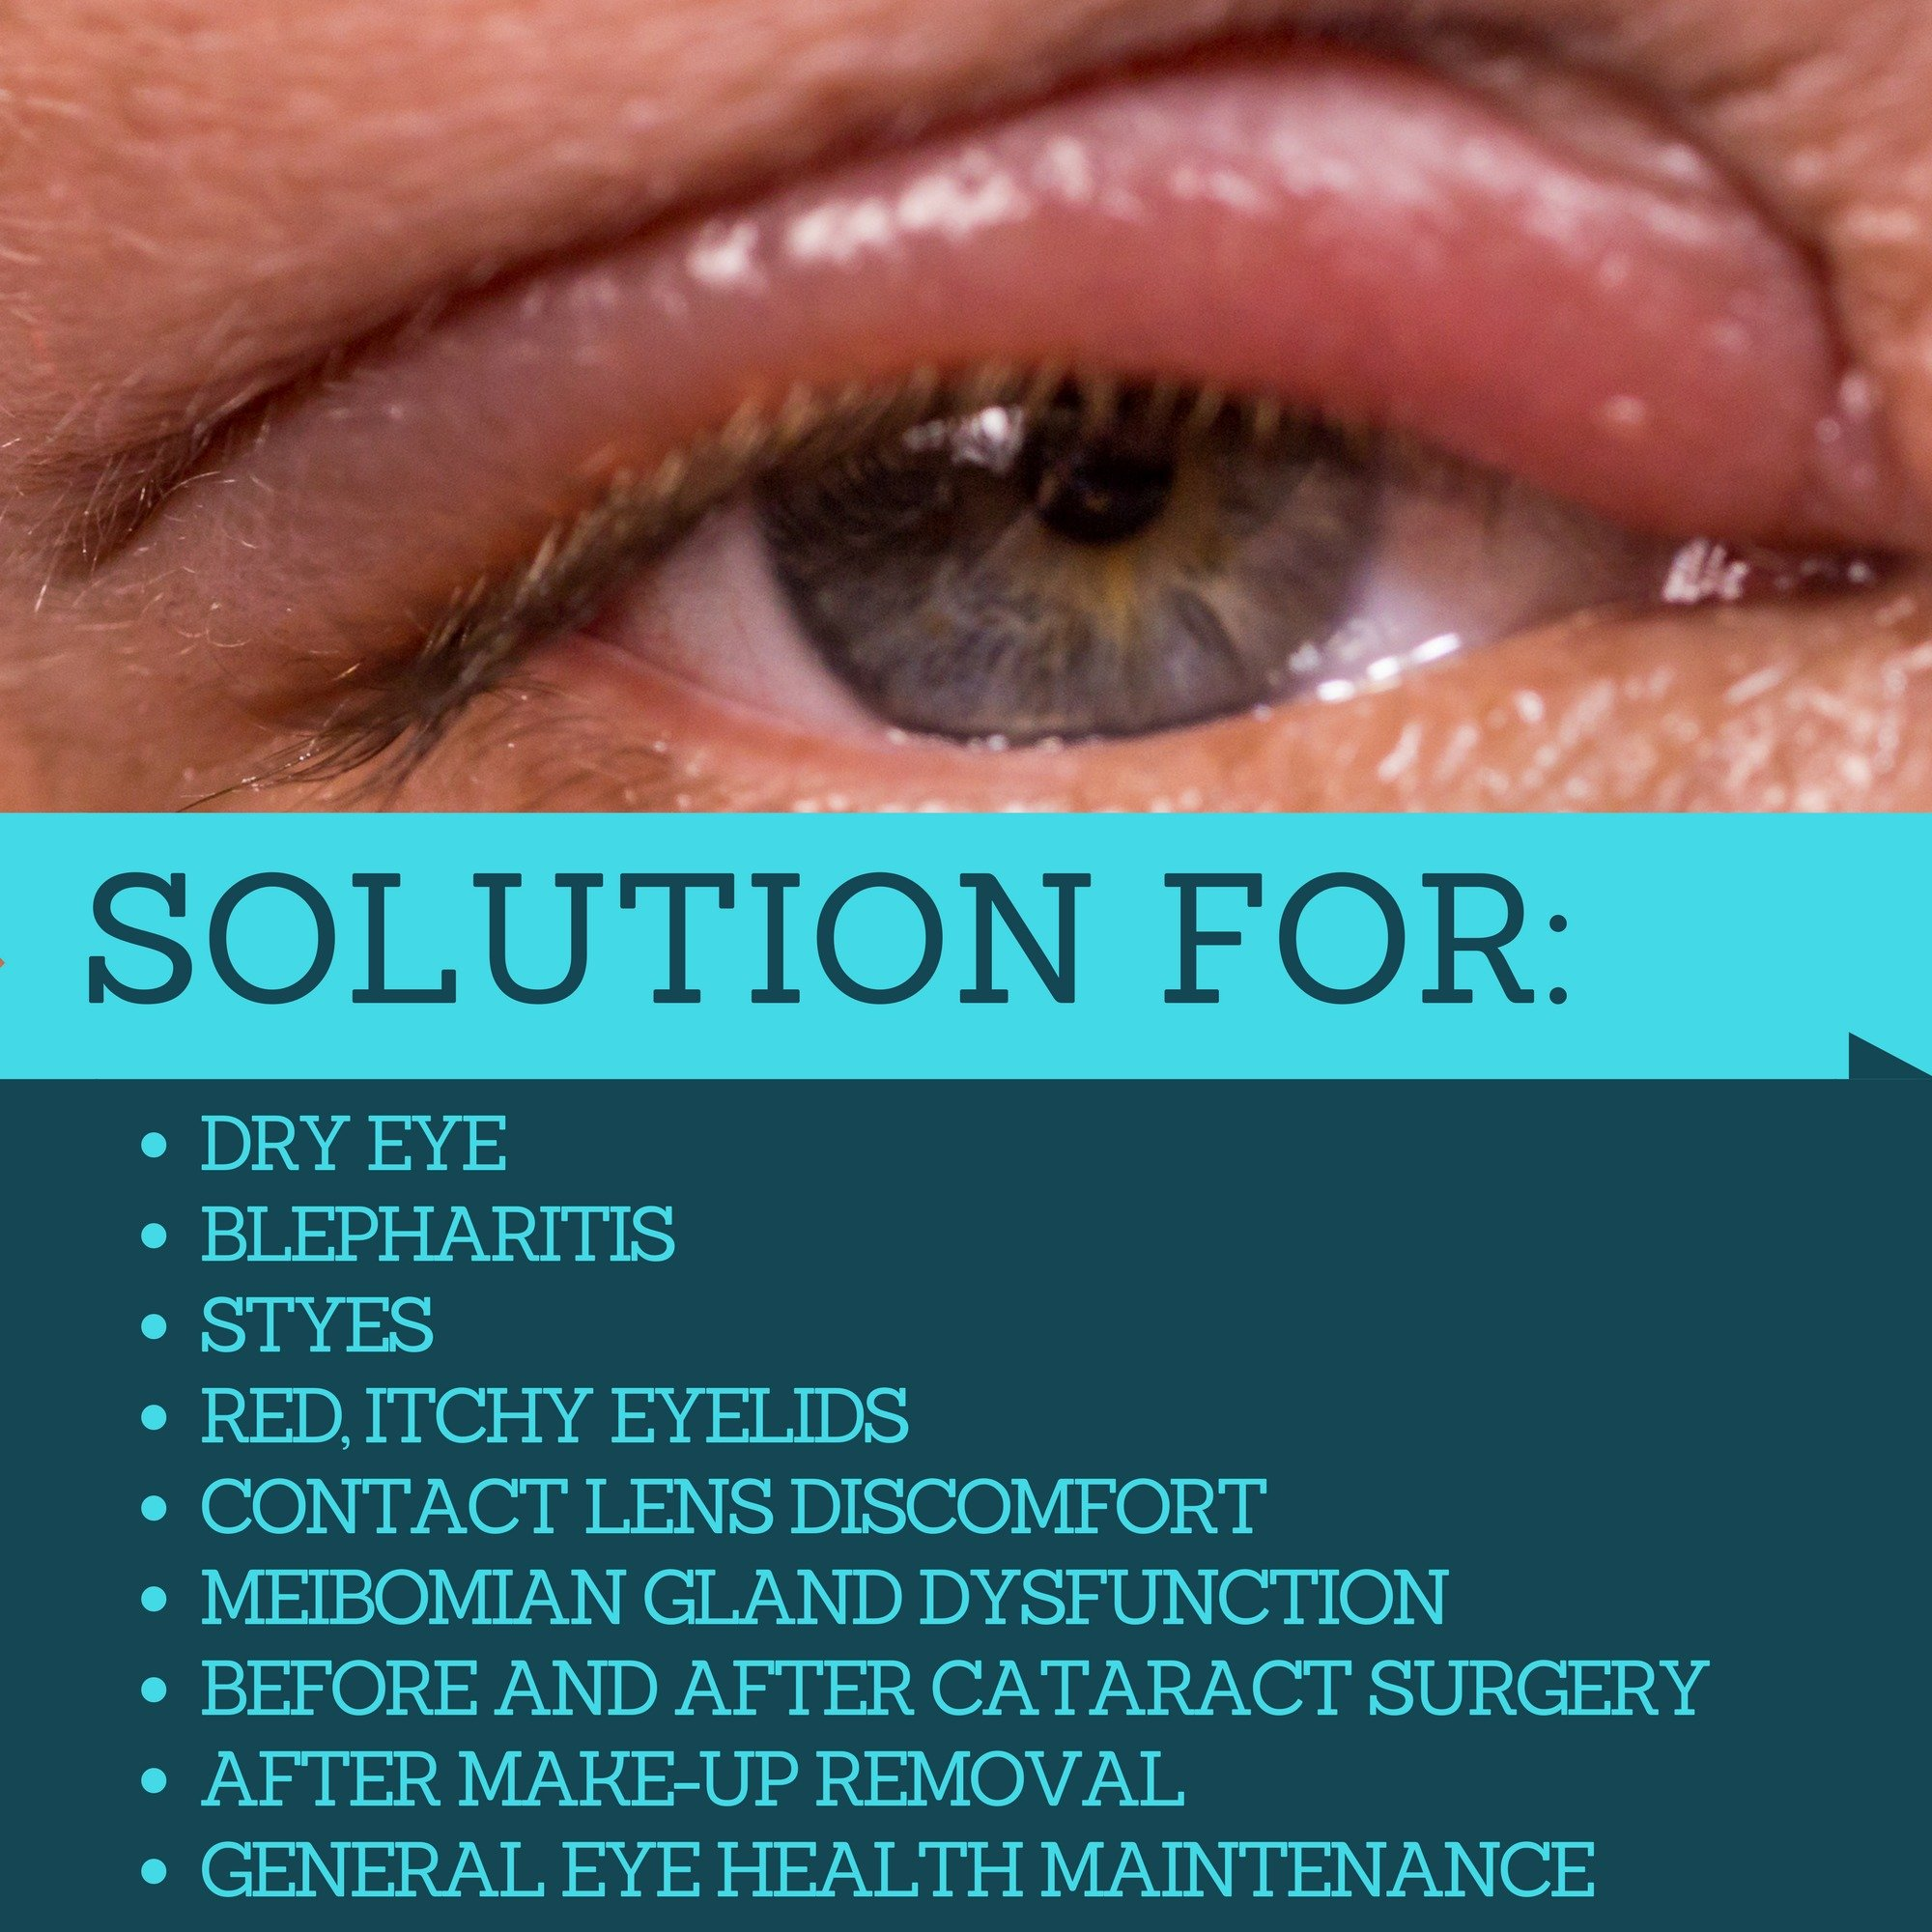 Hypochlorous Acid Eyelid Cleanser Spray - Heyedrate Lid and Lash Cleanser for Relief of Styes, Blepharitis, Dry Eyes, Meibomian Gland Dysfunction, Rosacea, and Eye Irritation by Eye Love (Image #7)